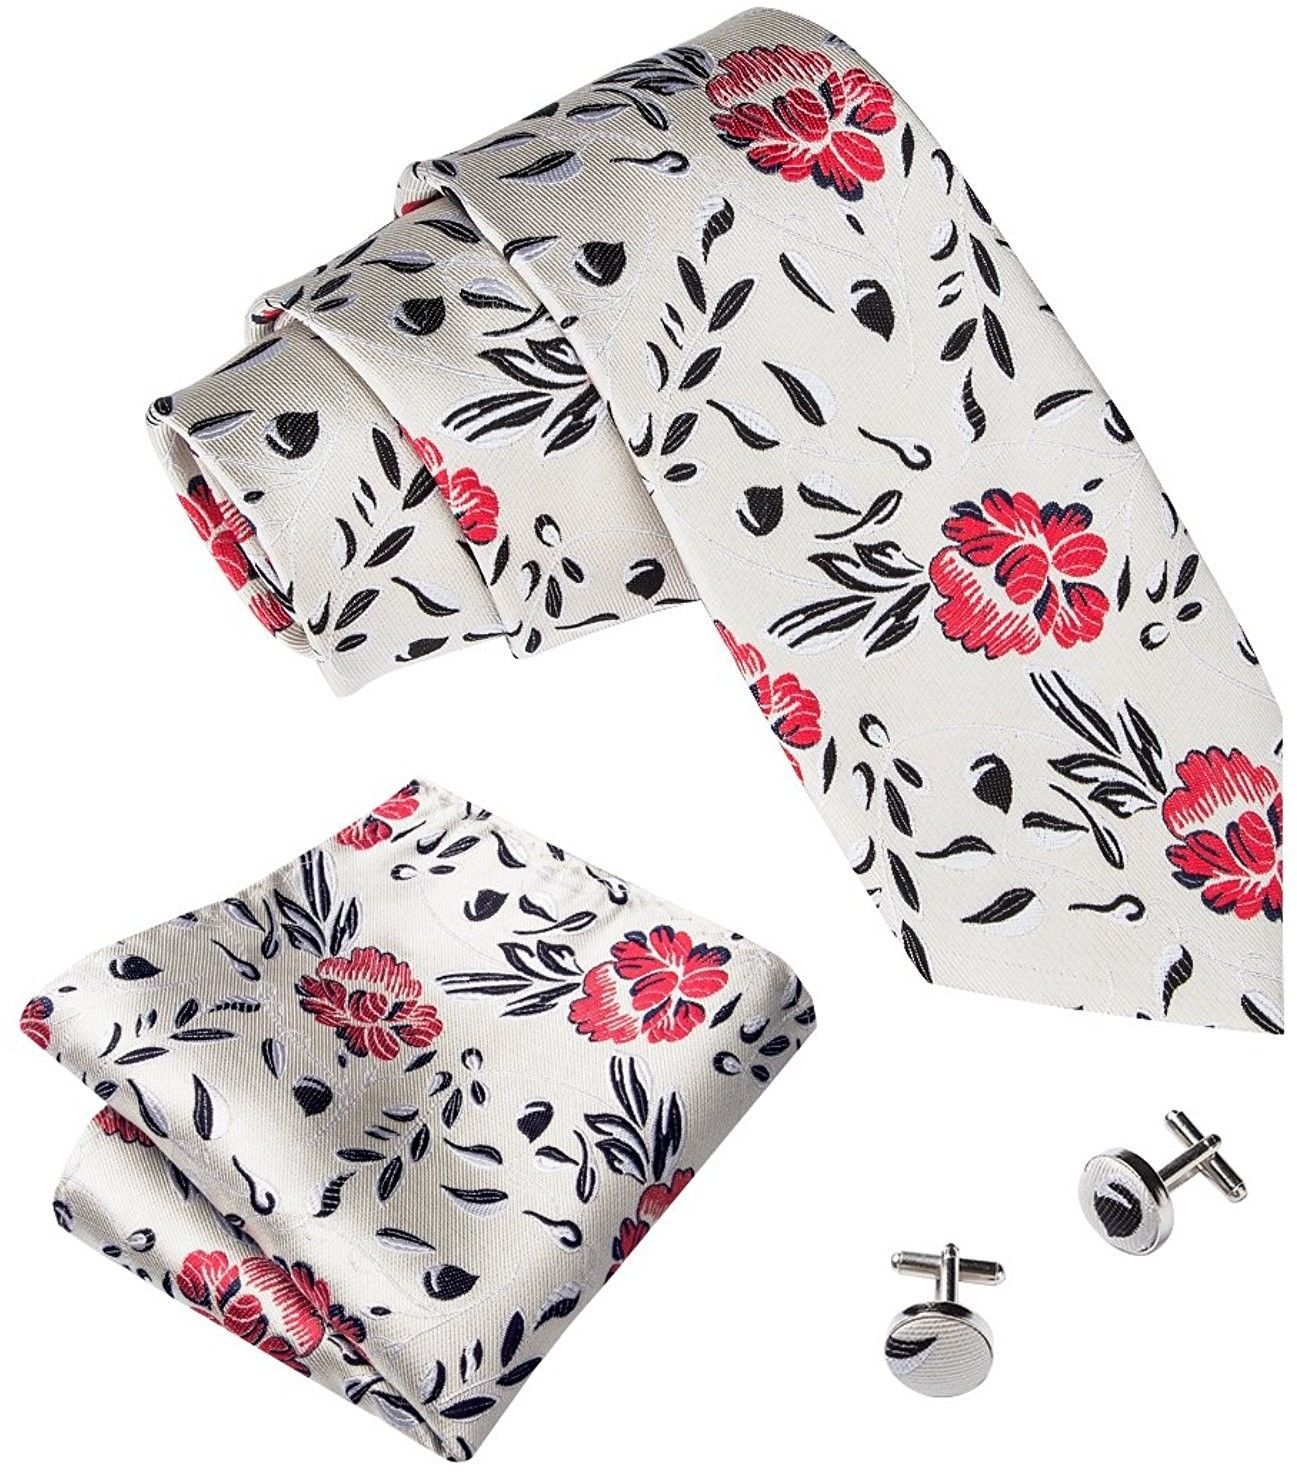 Barry.Wang Floral Ties For Men Woven Necktie Set Hanky Cufflinks